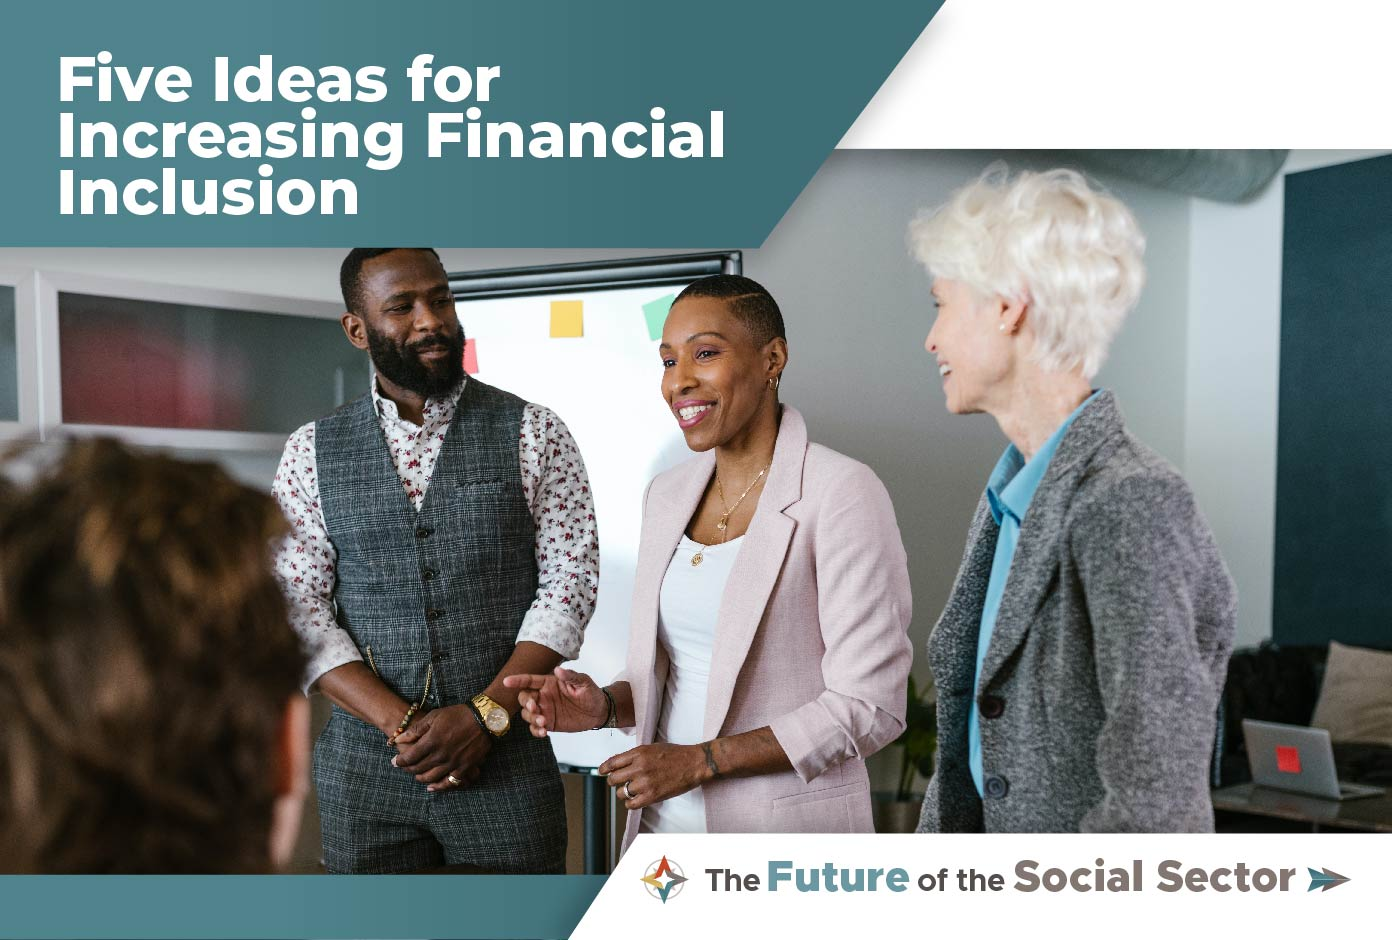 Five Ideas for Increasing Financial Inclusion